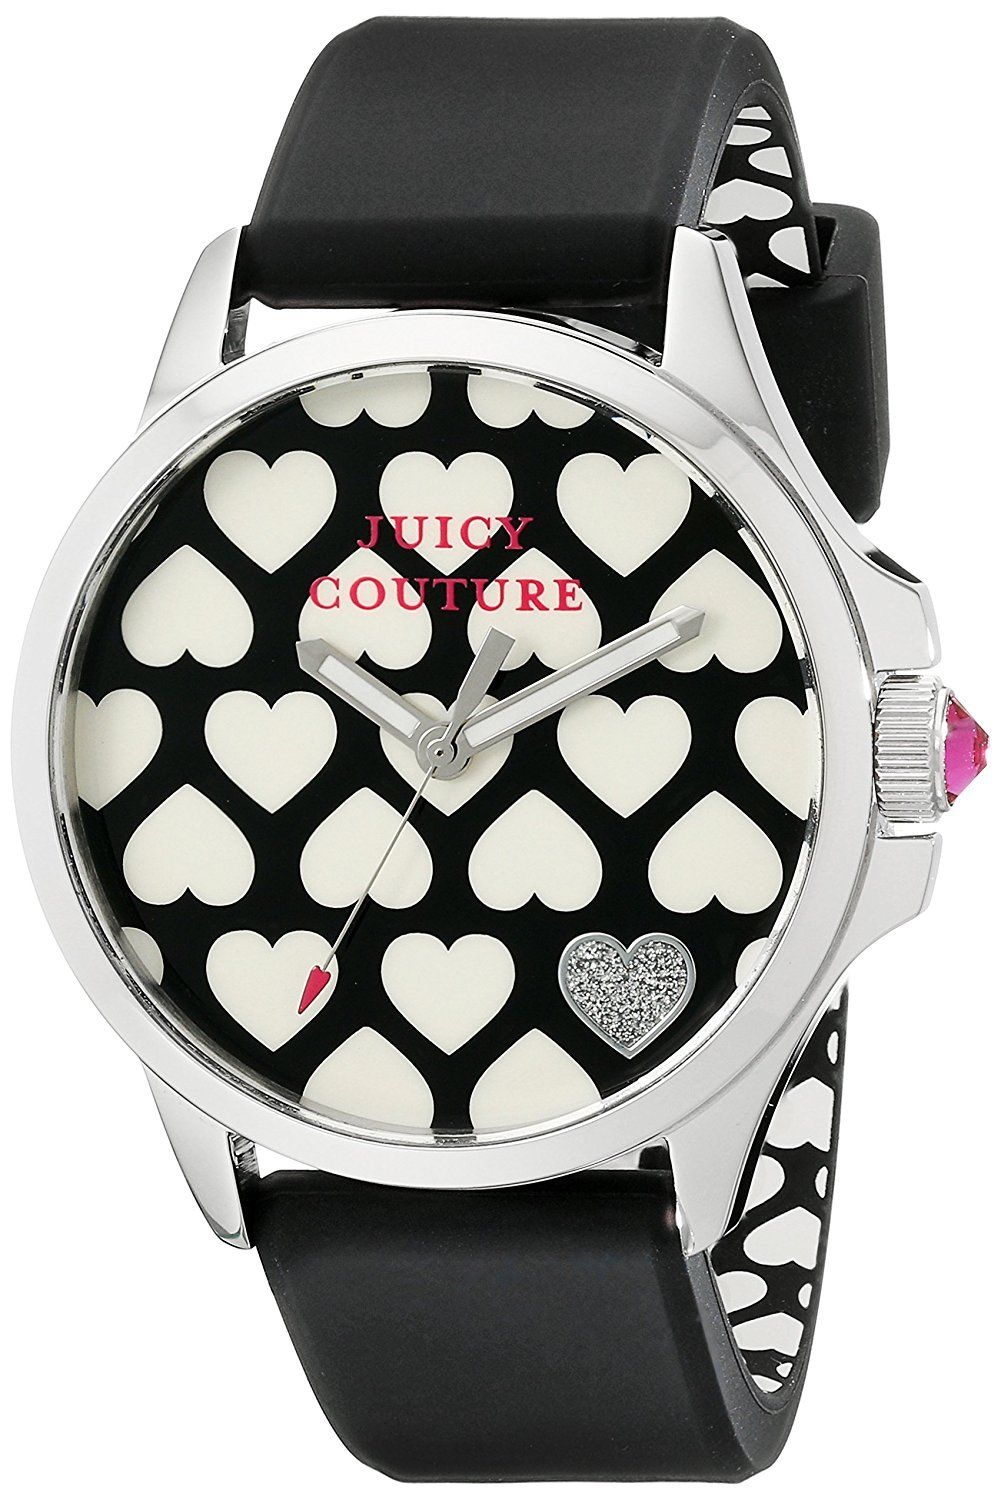 Juicy Couture Womens watches, Black and white heart